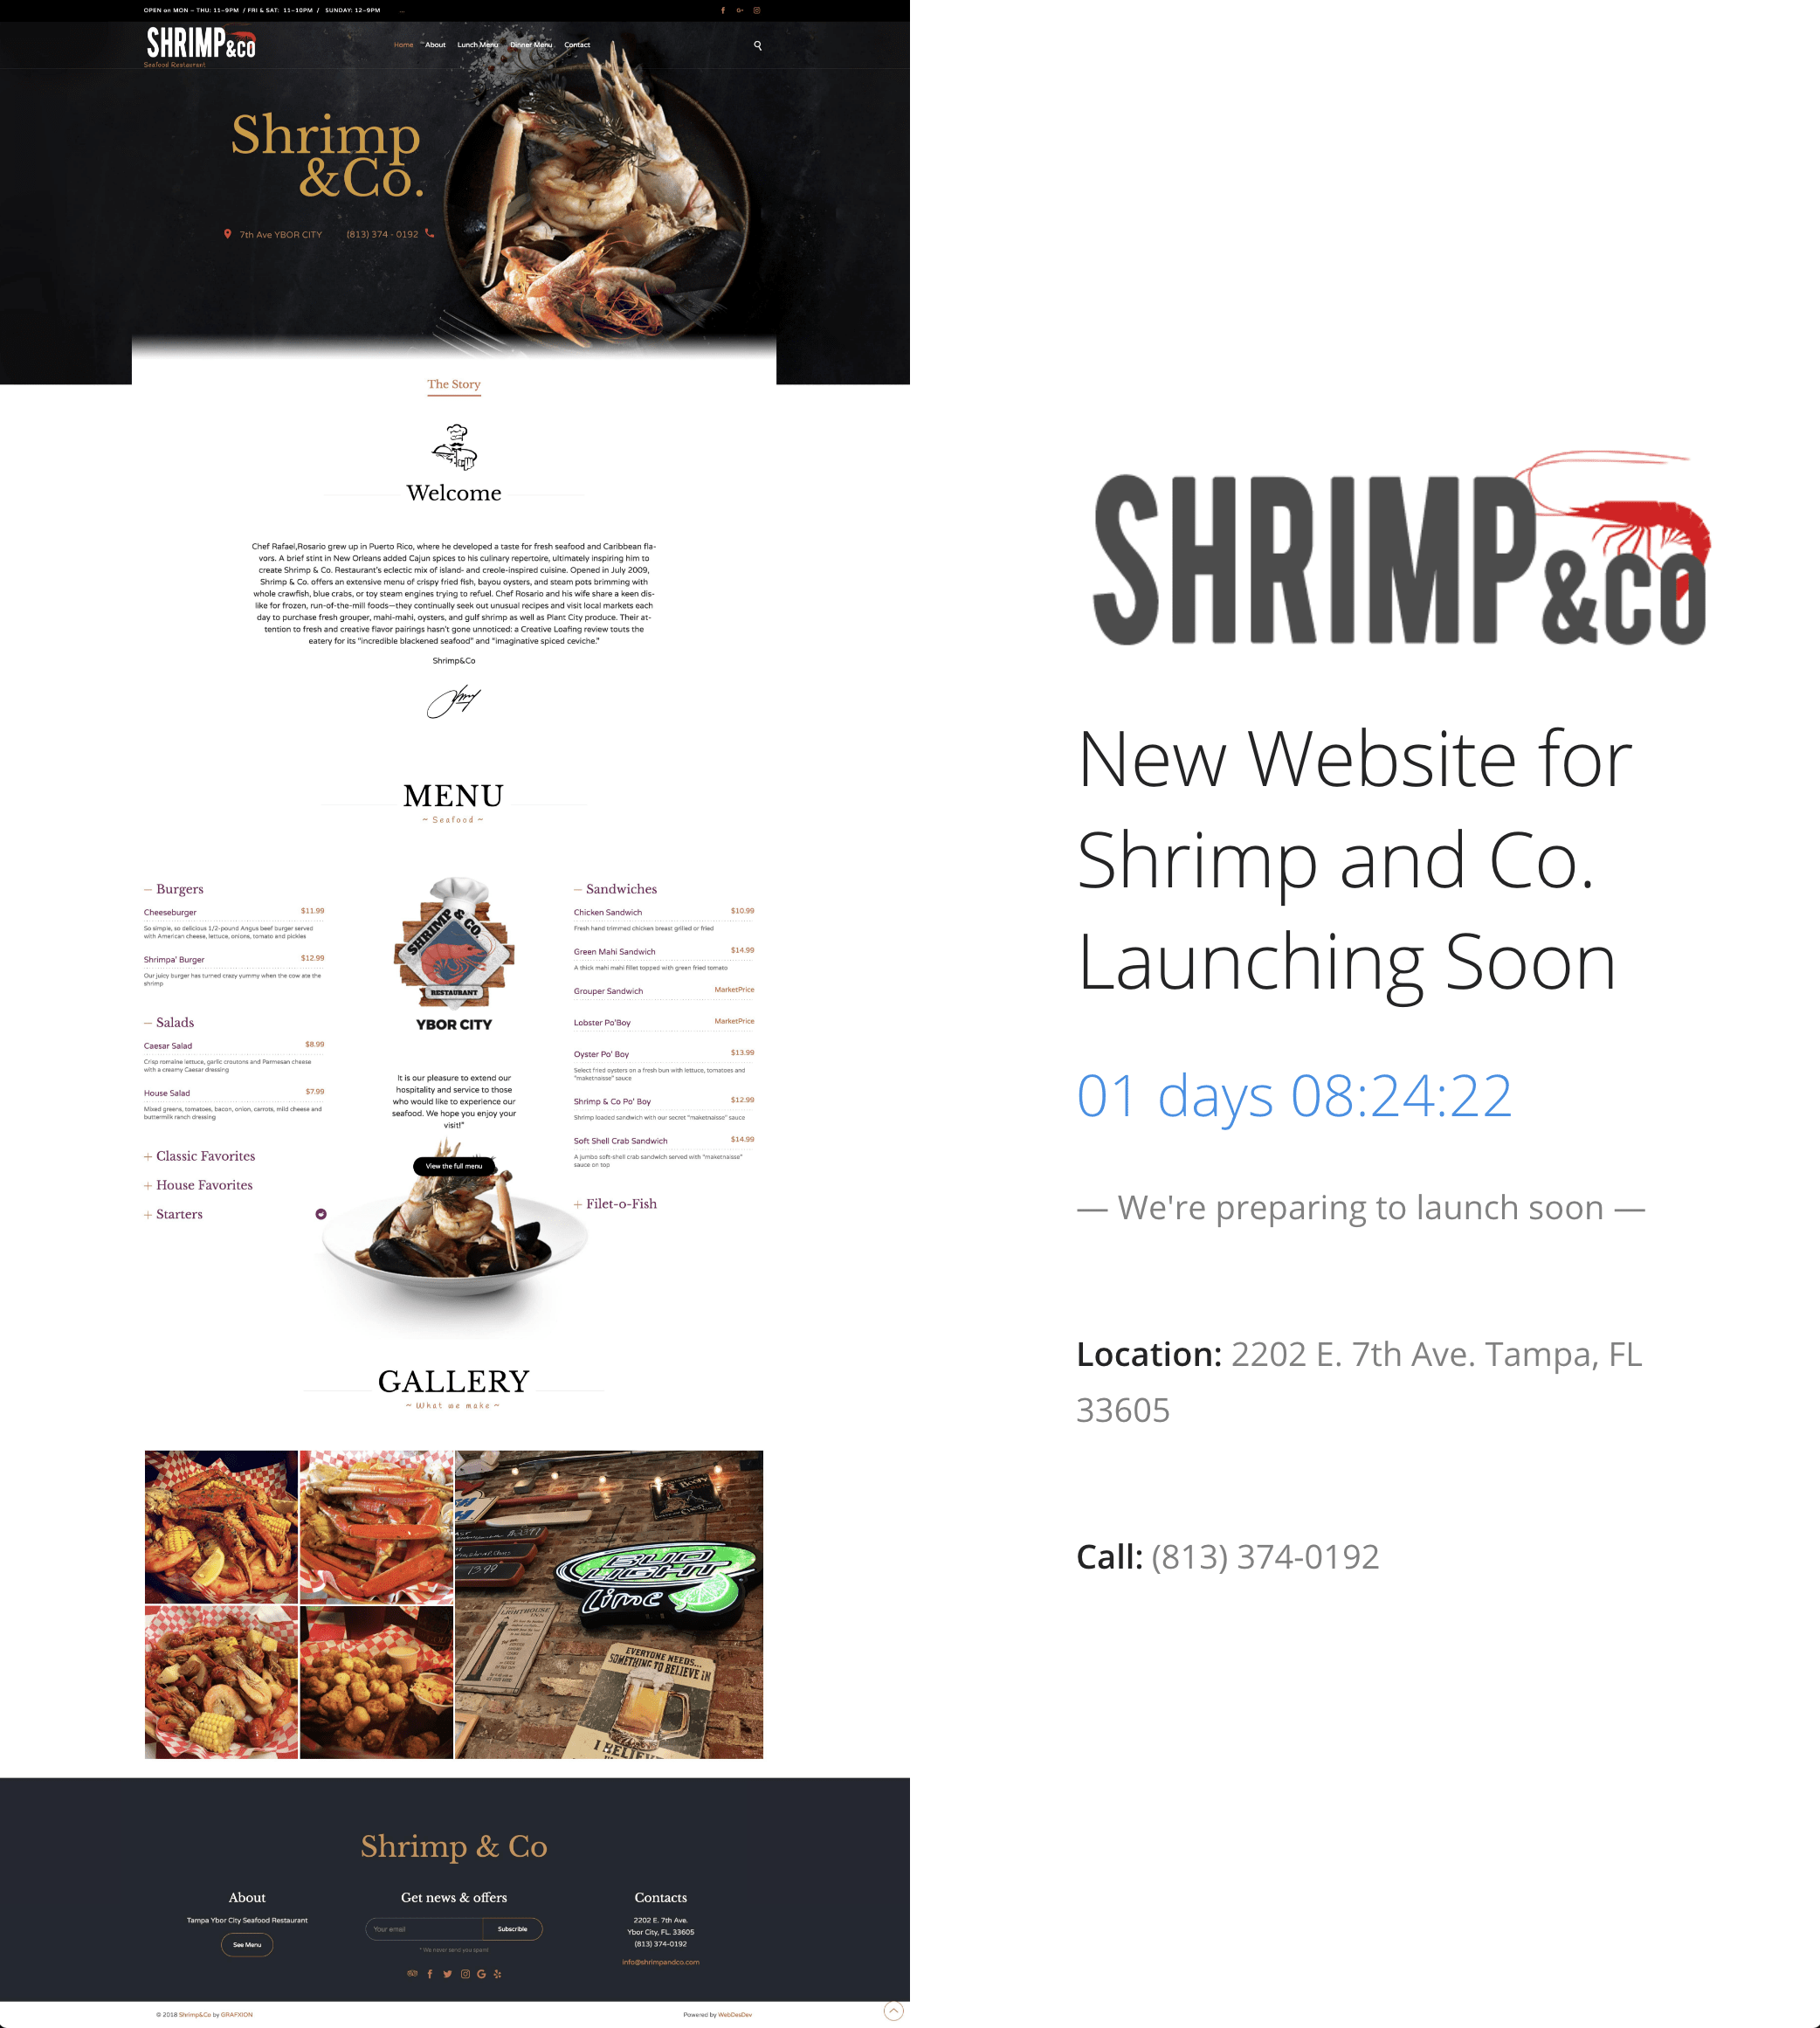 Shrimp and Co New Website Coming soon